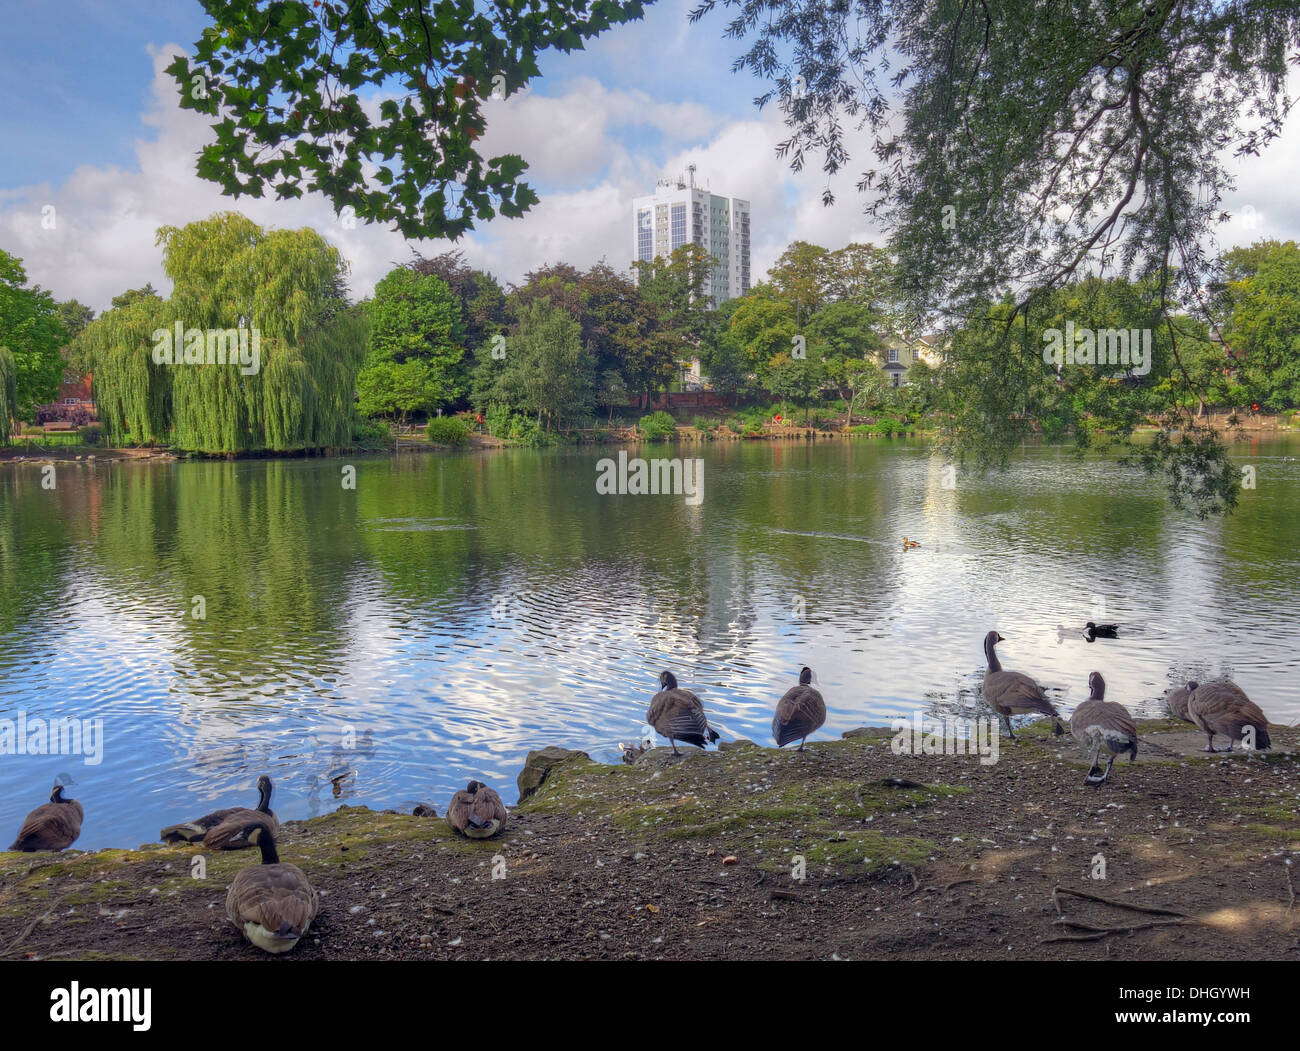 Walsall town Arboretum park pond , West Midlands England , UK - Stock Image